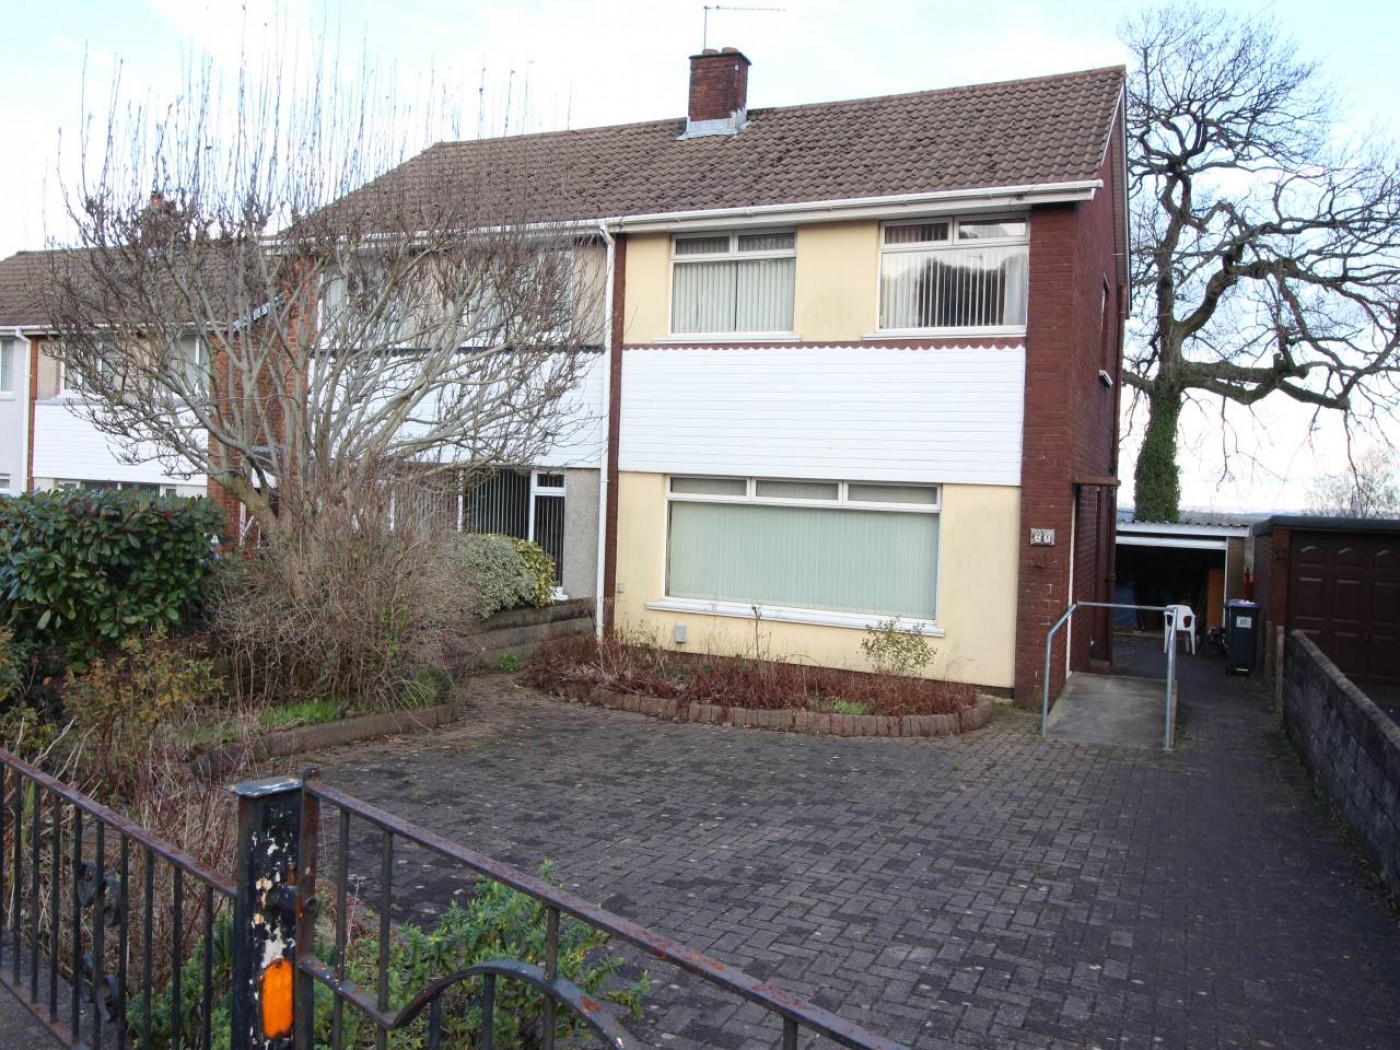 A 3 Bedroom House Sold in Thornhill Road, Upper Cwmbran